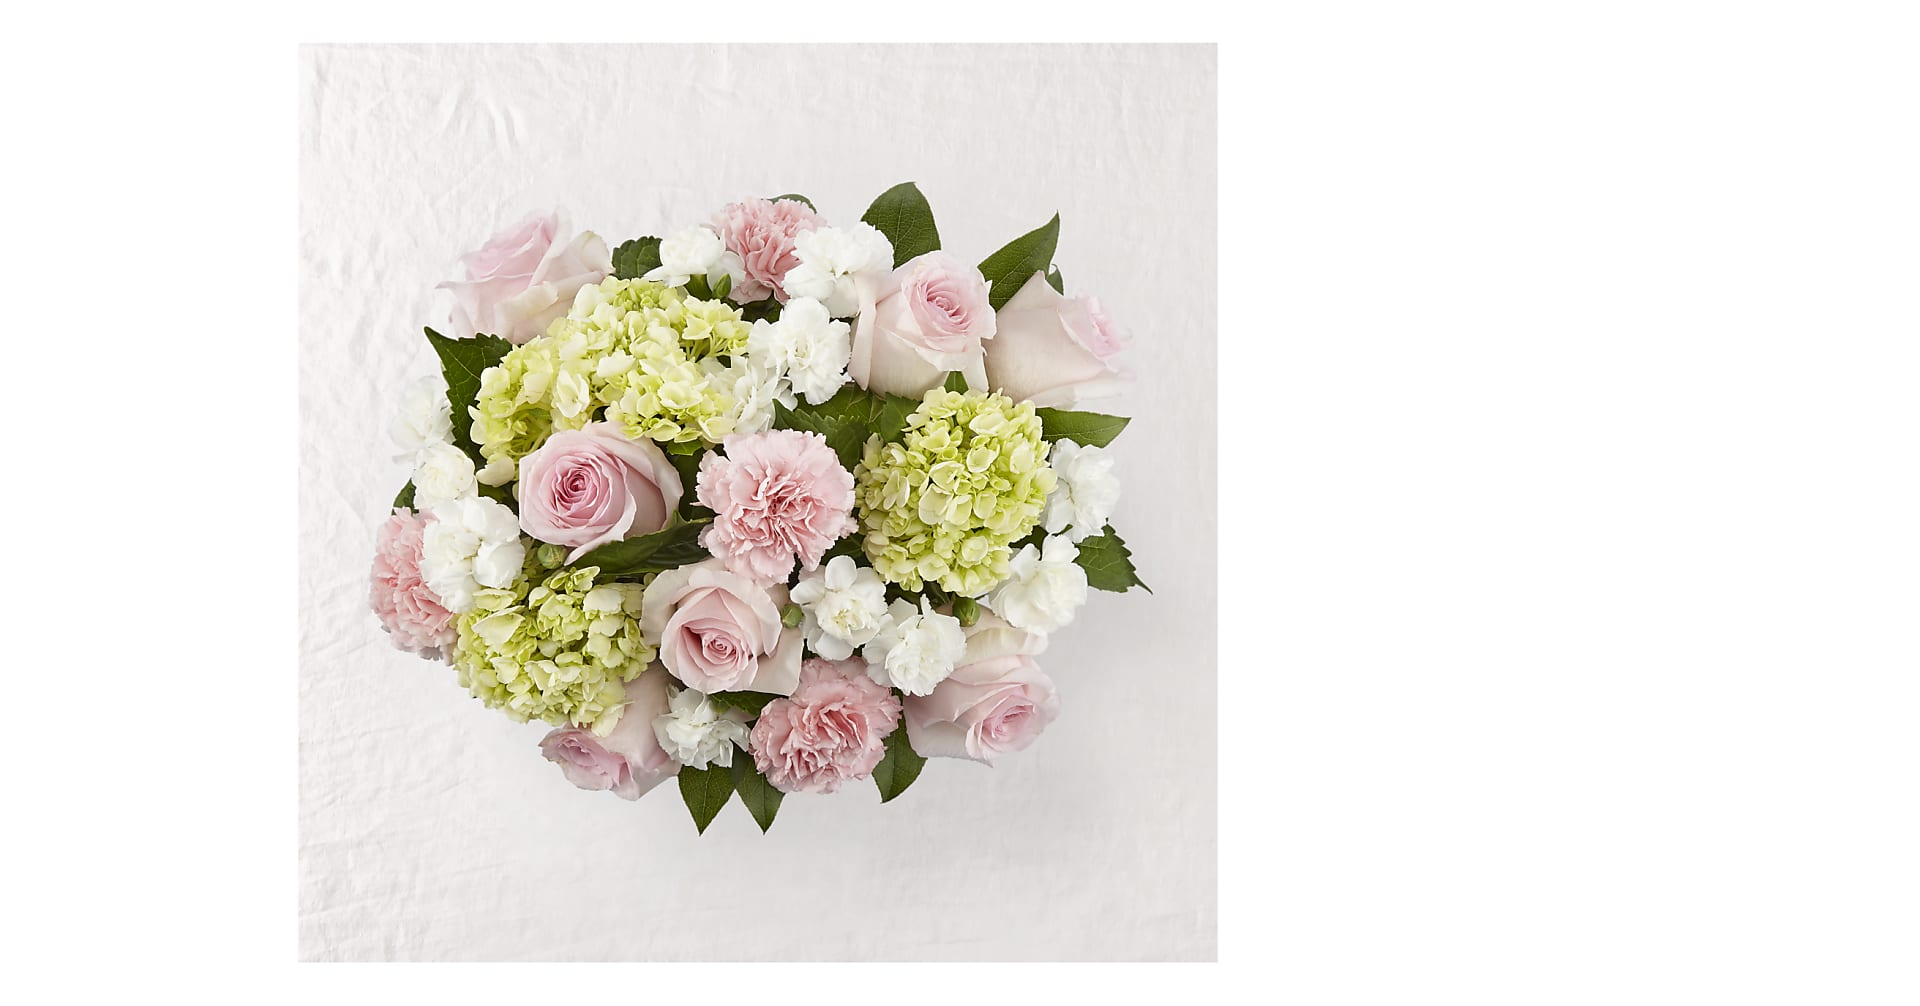 Darling Baby Girl Bouquet - Image 2 Of 3